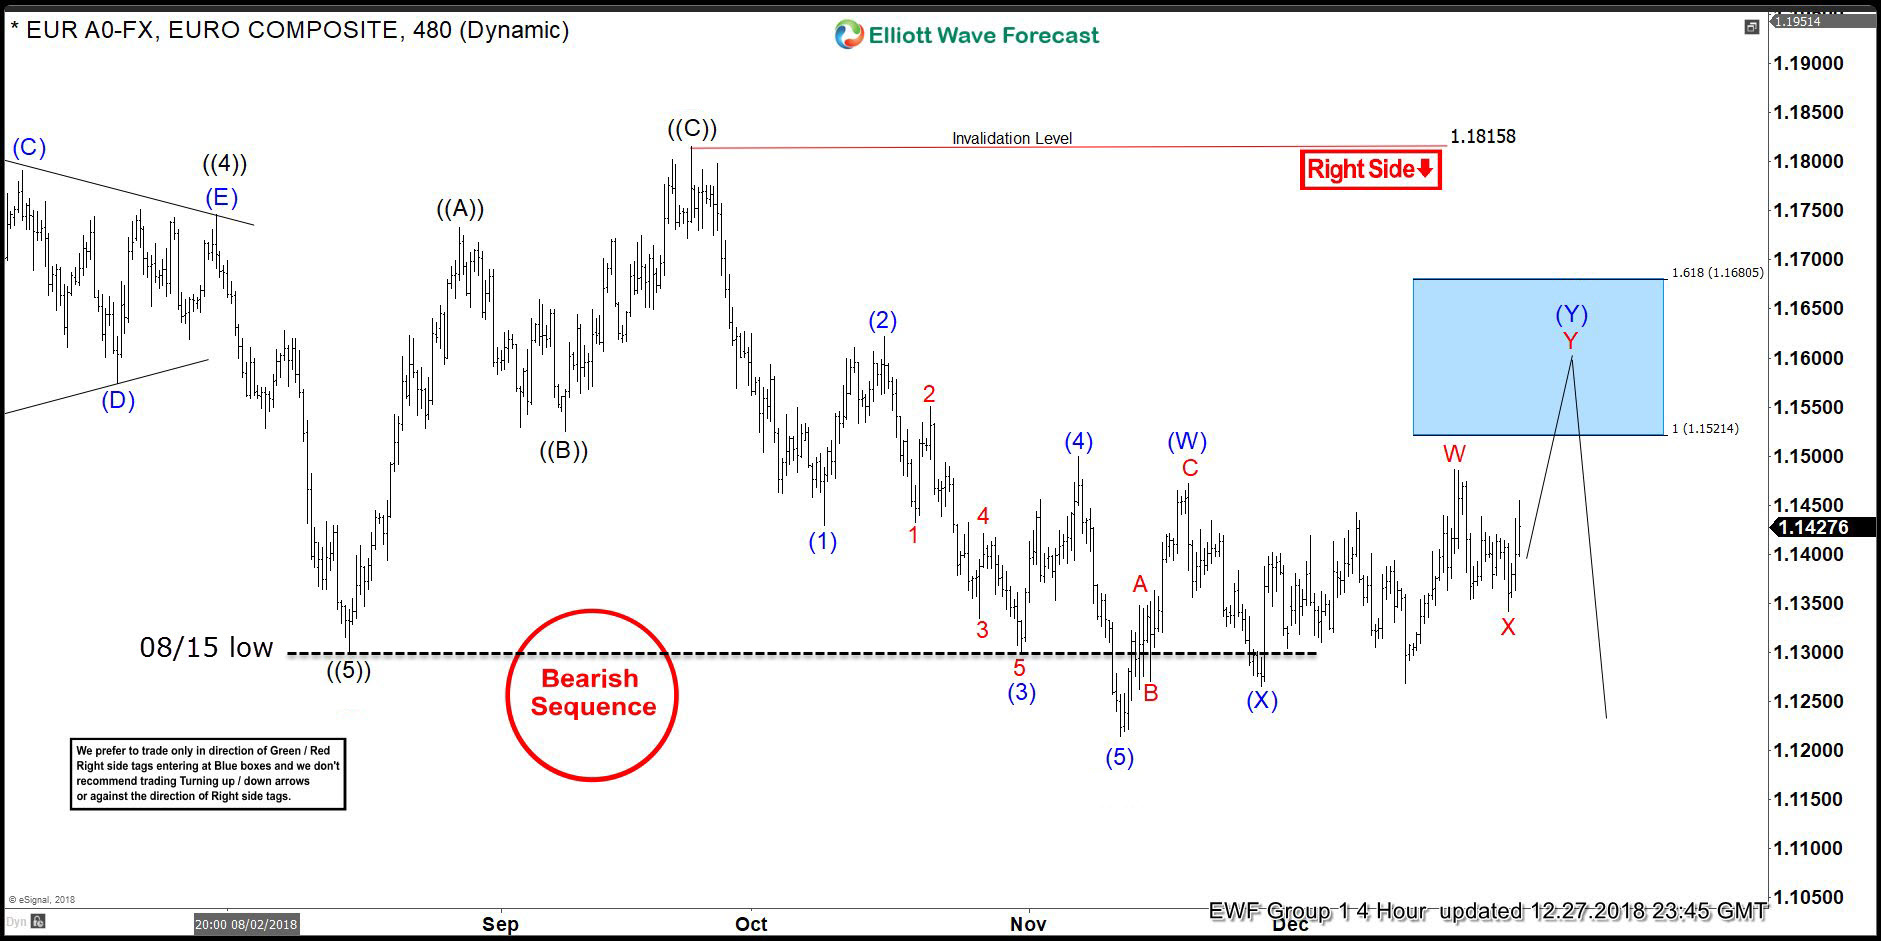 EURUSD Forecasting The Decline And Selling The Rallies